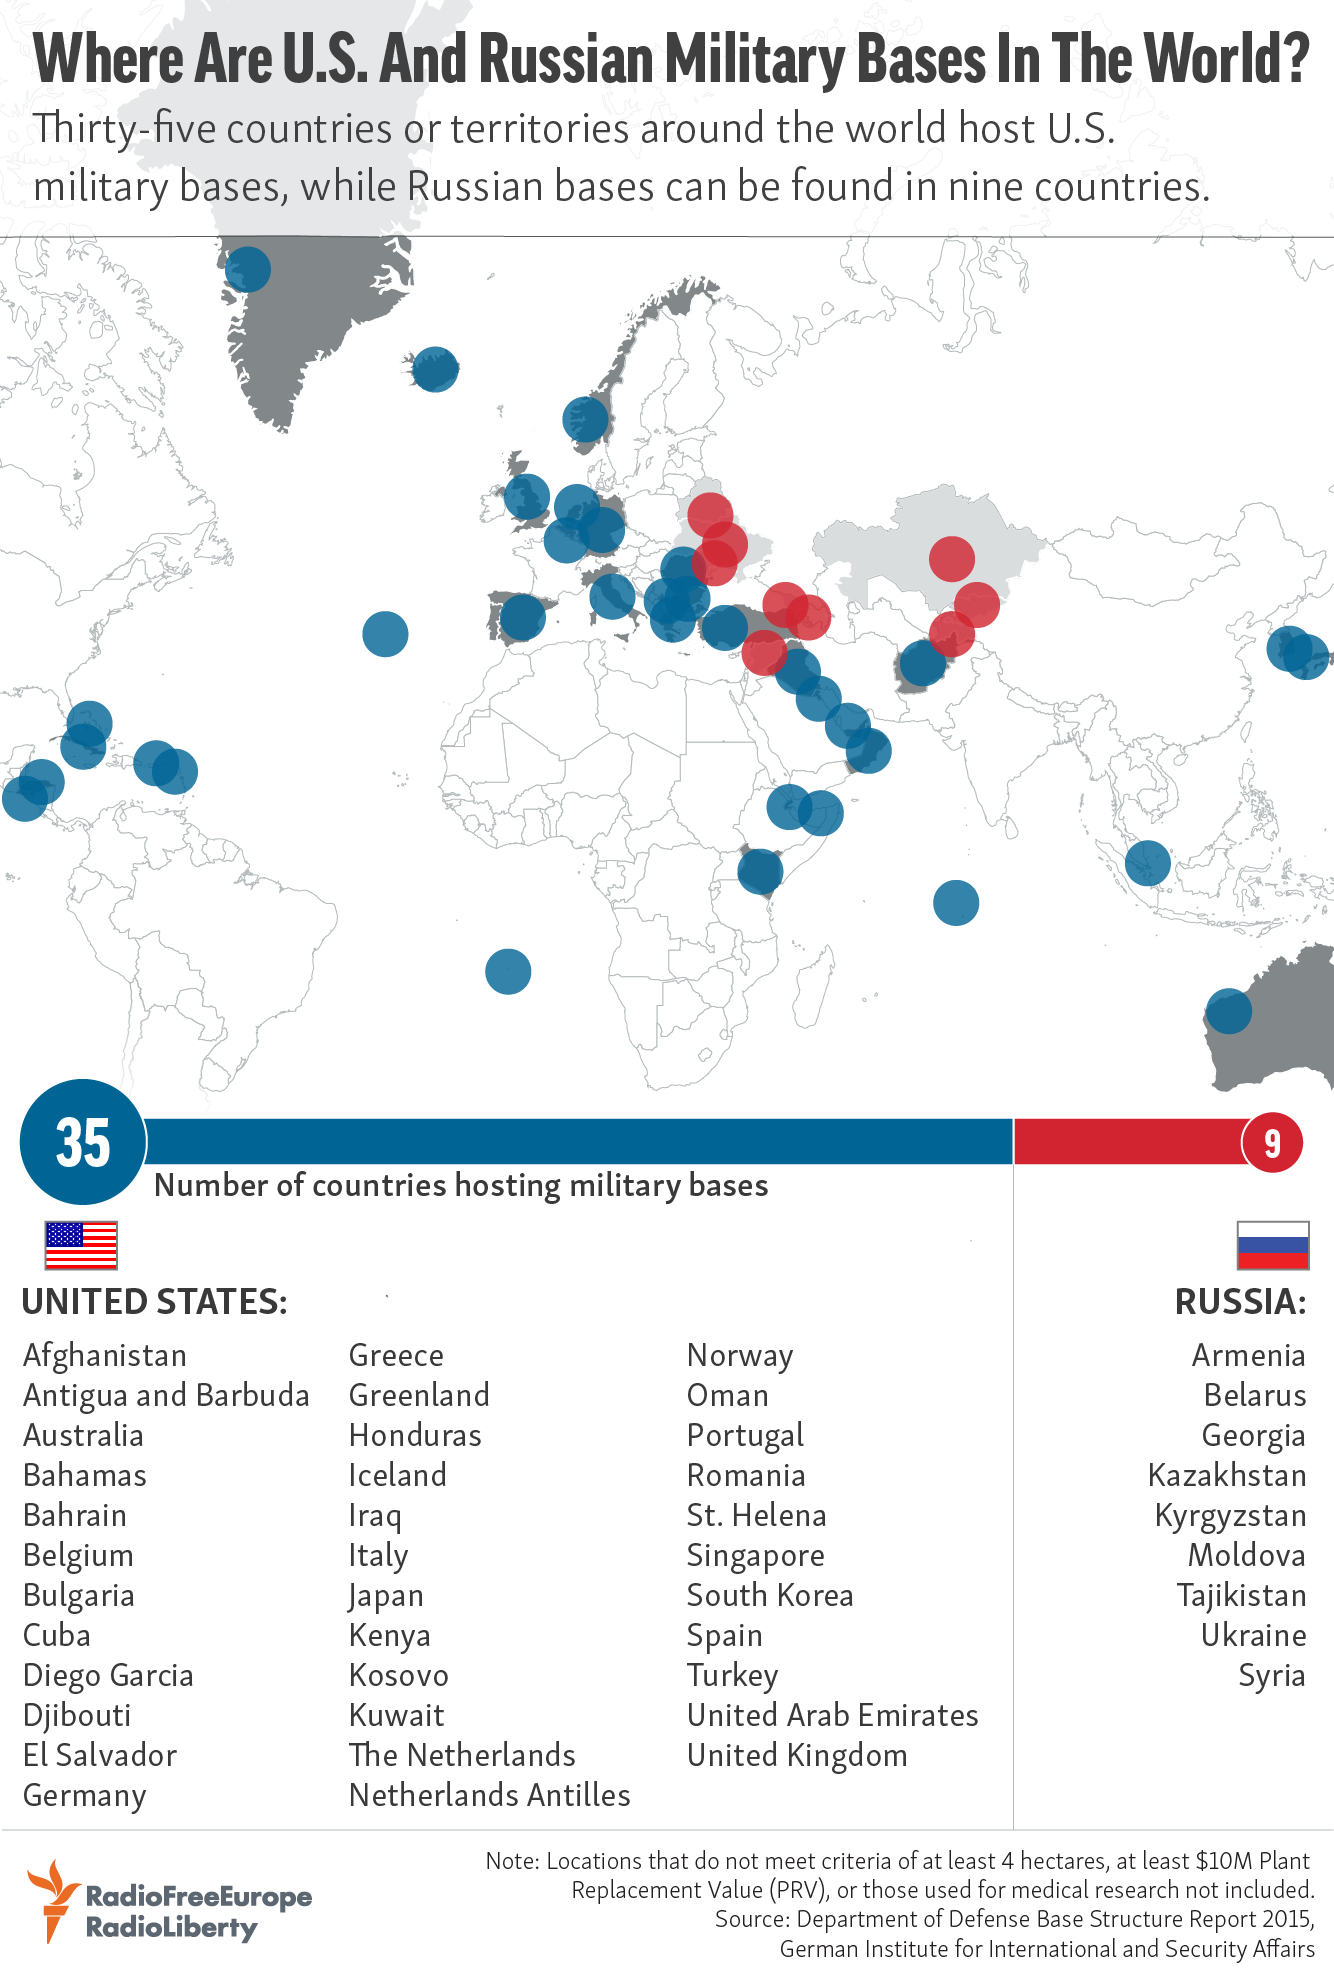 Where Are US And Russian Military Bases In The World